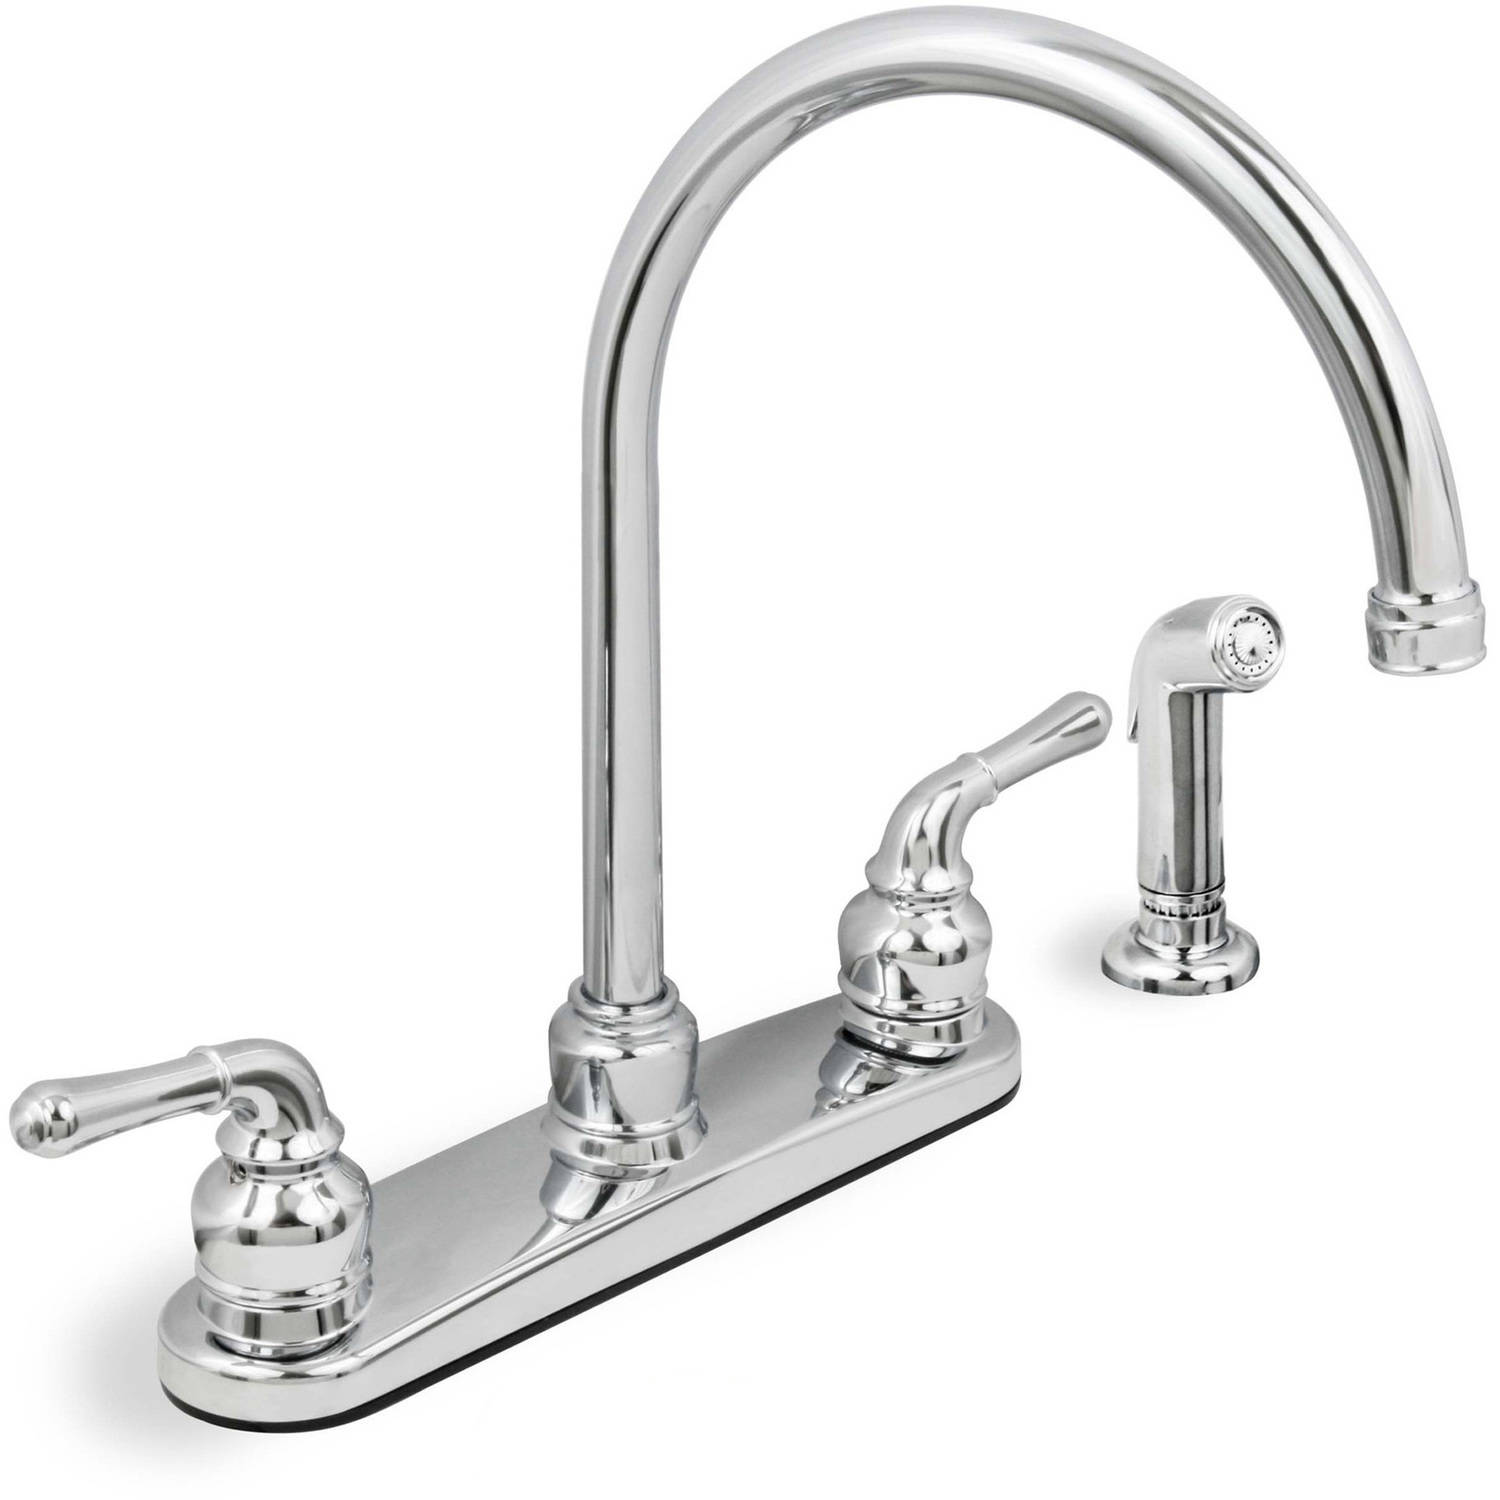 sc 1 st  Walmart & Lead Free Two-Handle Kitchen Faucet with Spray Chrome - Walmart.com